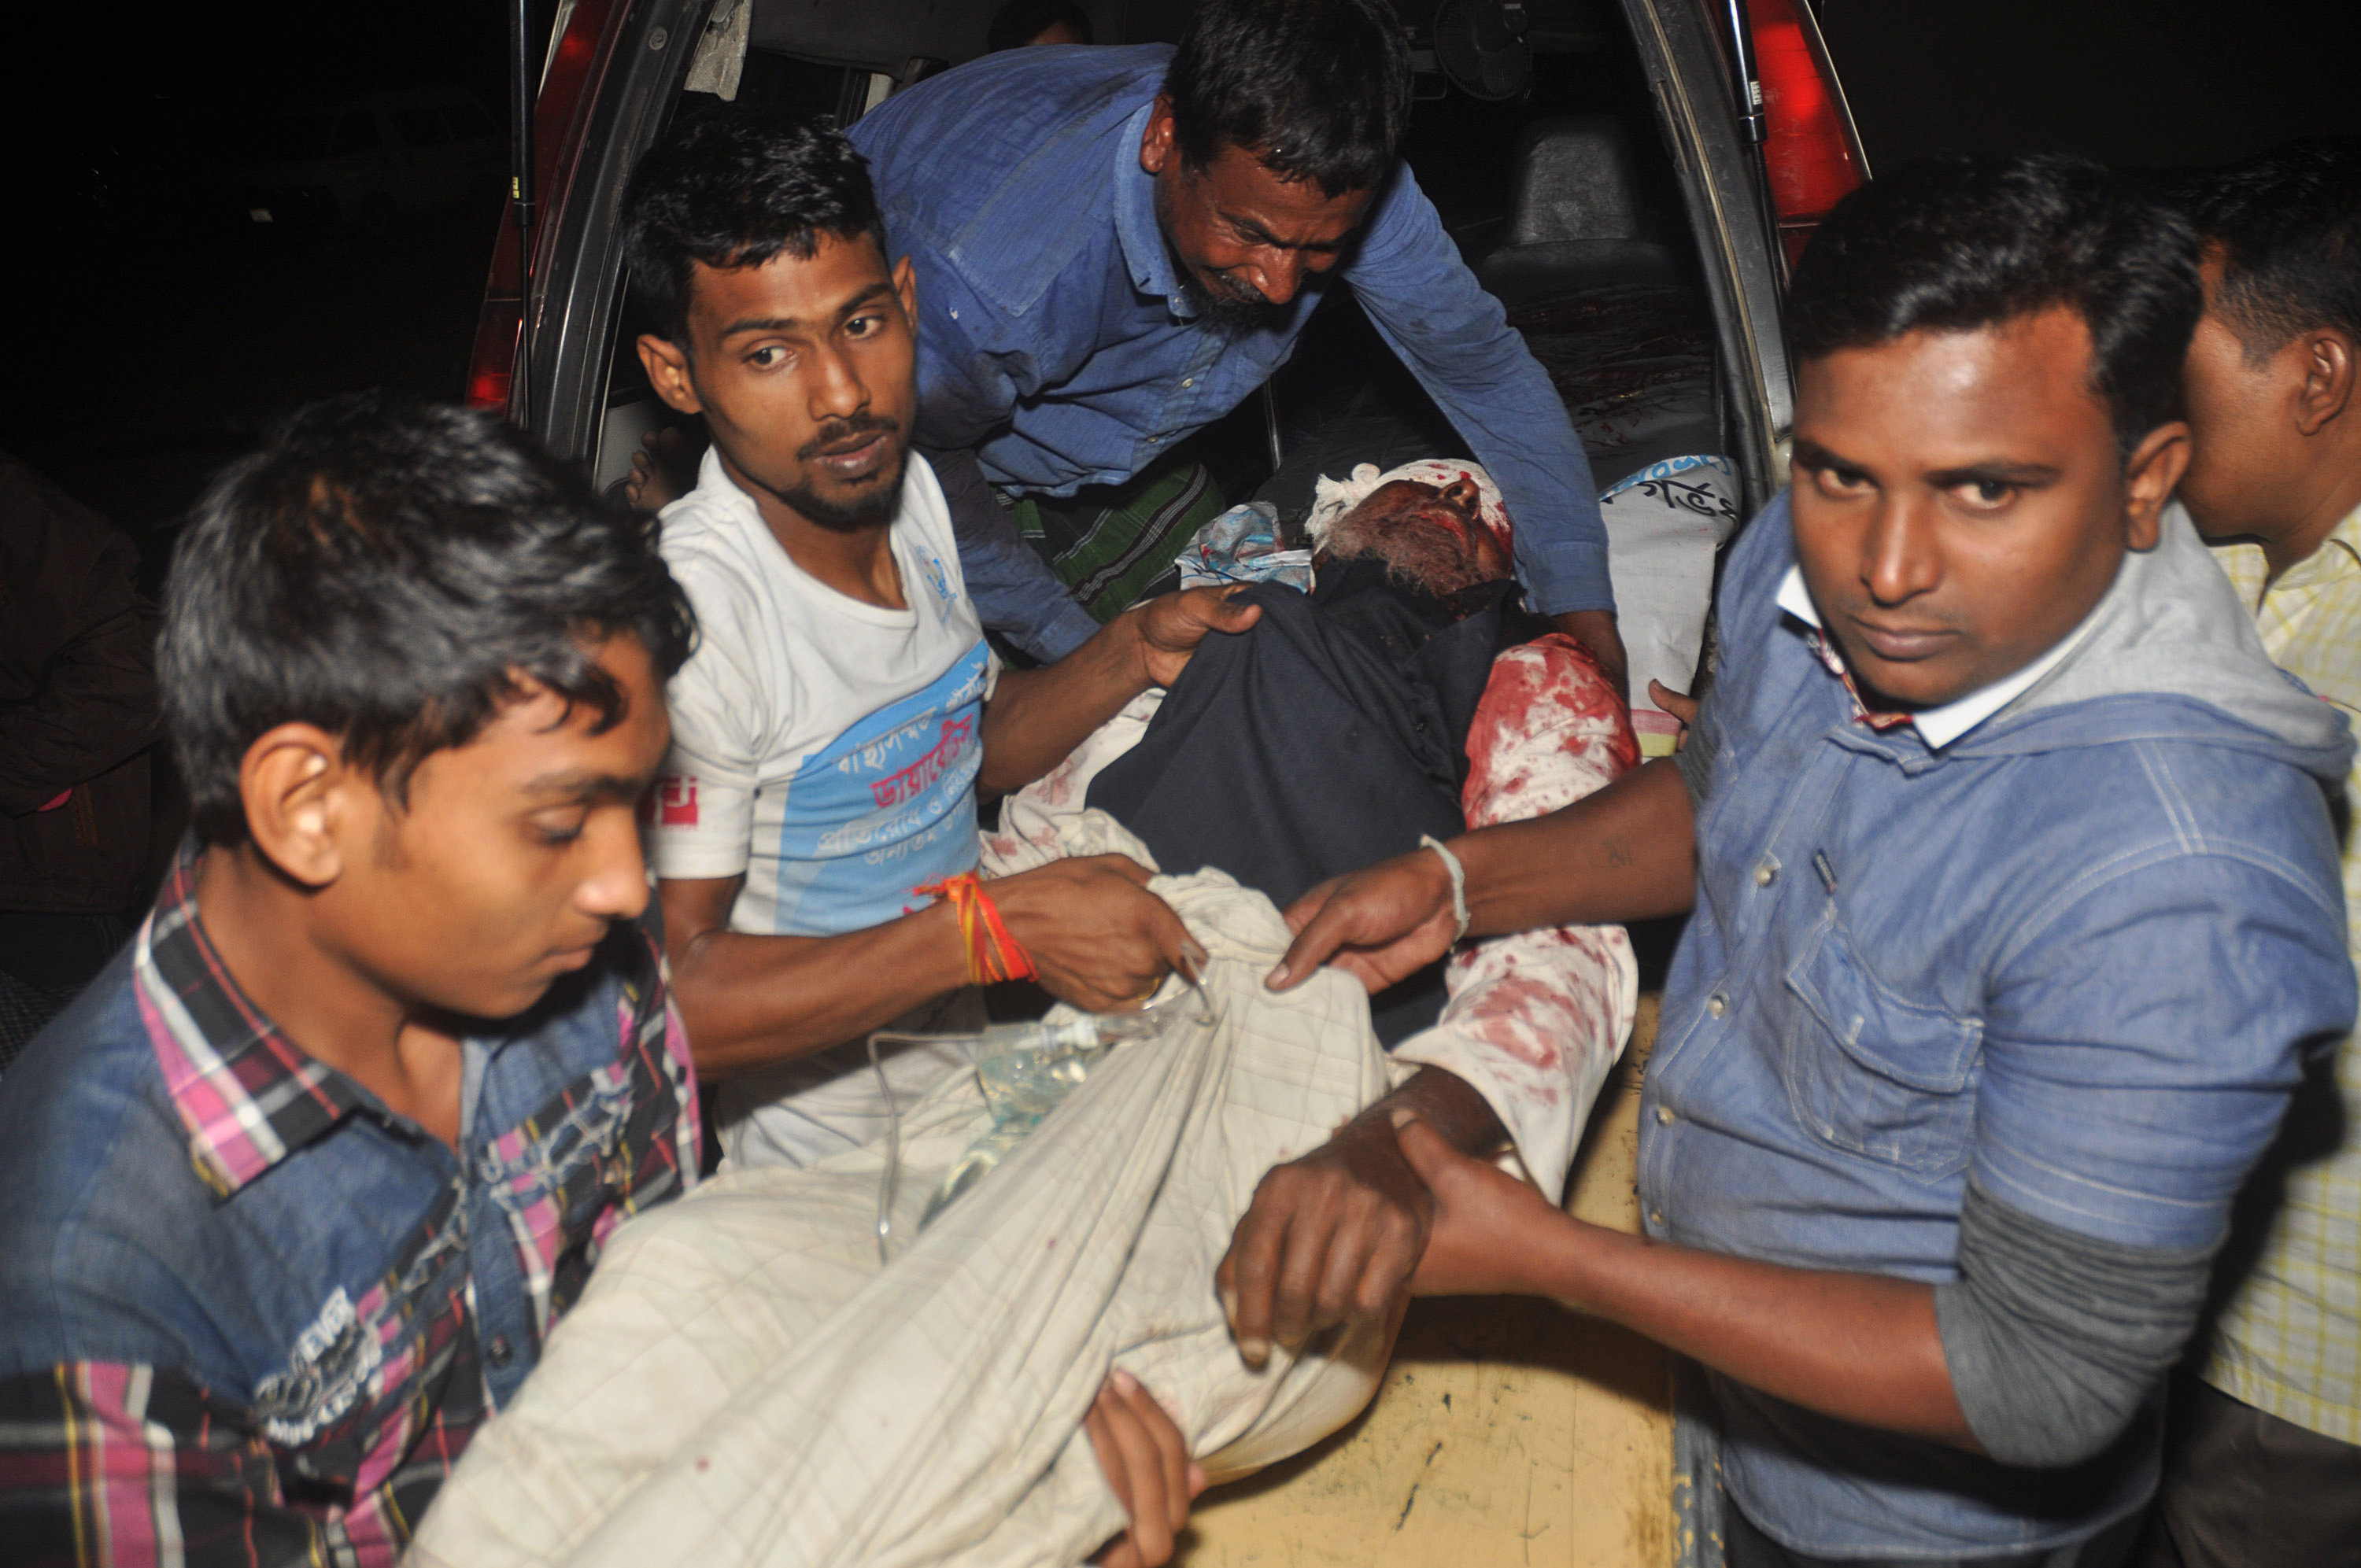 A man injured in an attack on a Shi'ite mosque is carried for treatment in Bogra district, Bangladesh, Nov. 26, 2015.